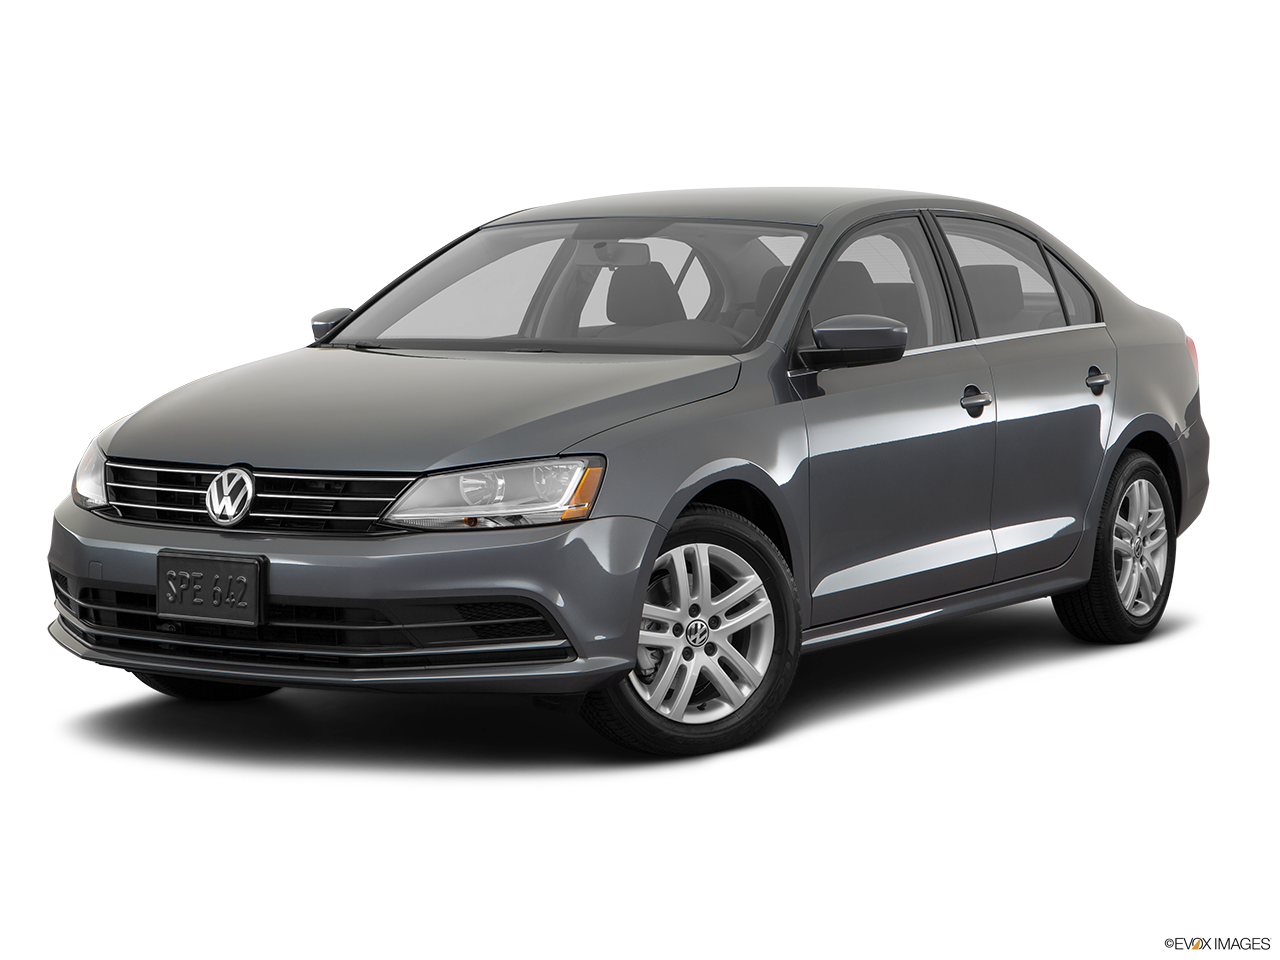 2017 volkswagen jetta hampton roads casey volkswagen. Black Bedroom Furniture Sets. Home Design Ideas